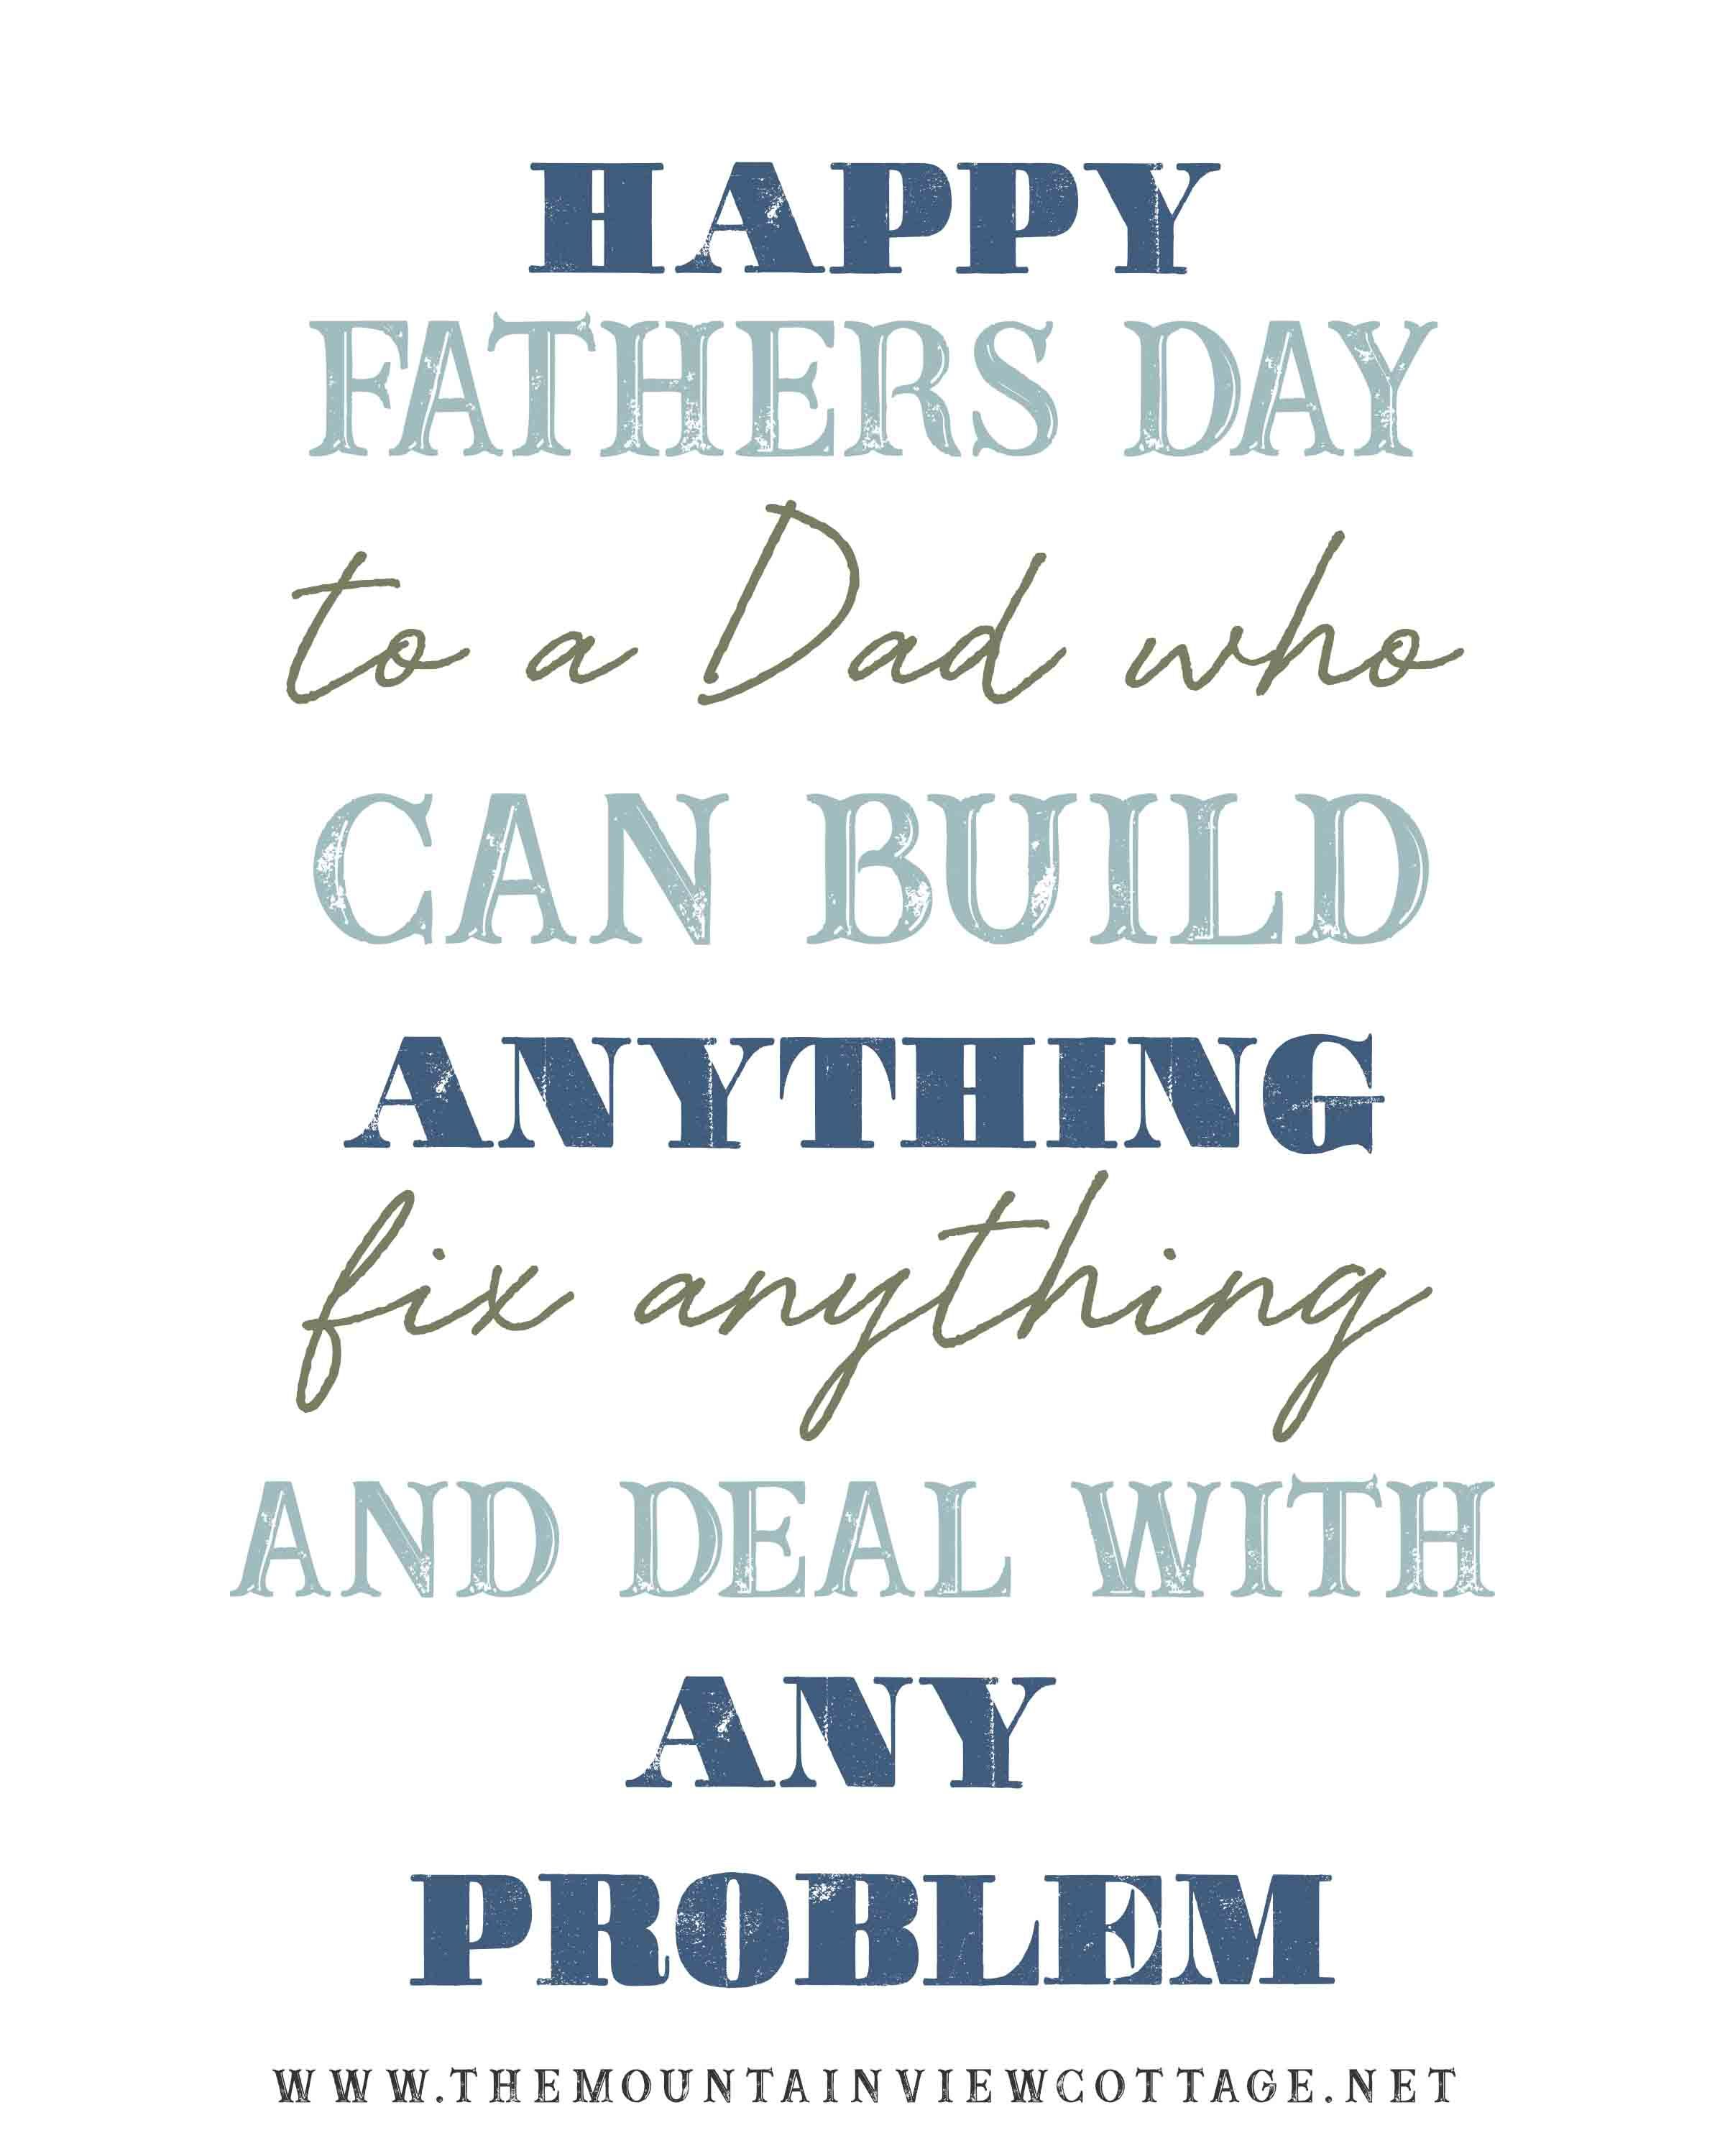 25 Dad Quotes to Inspire {With Images} The Mountain View